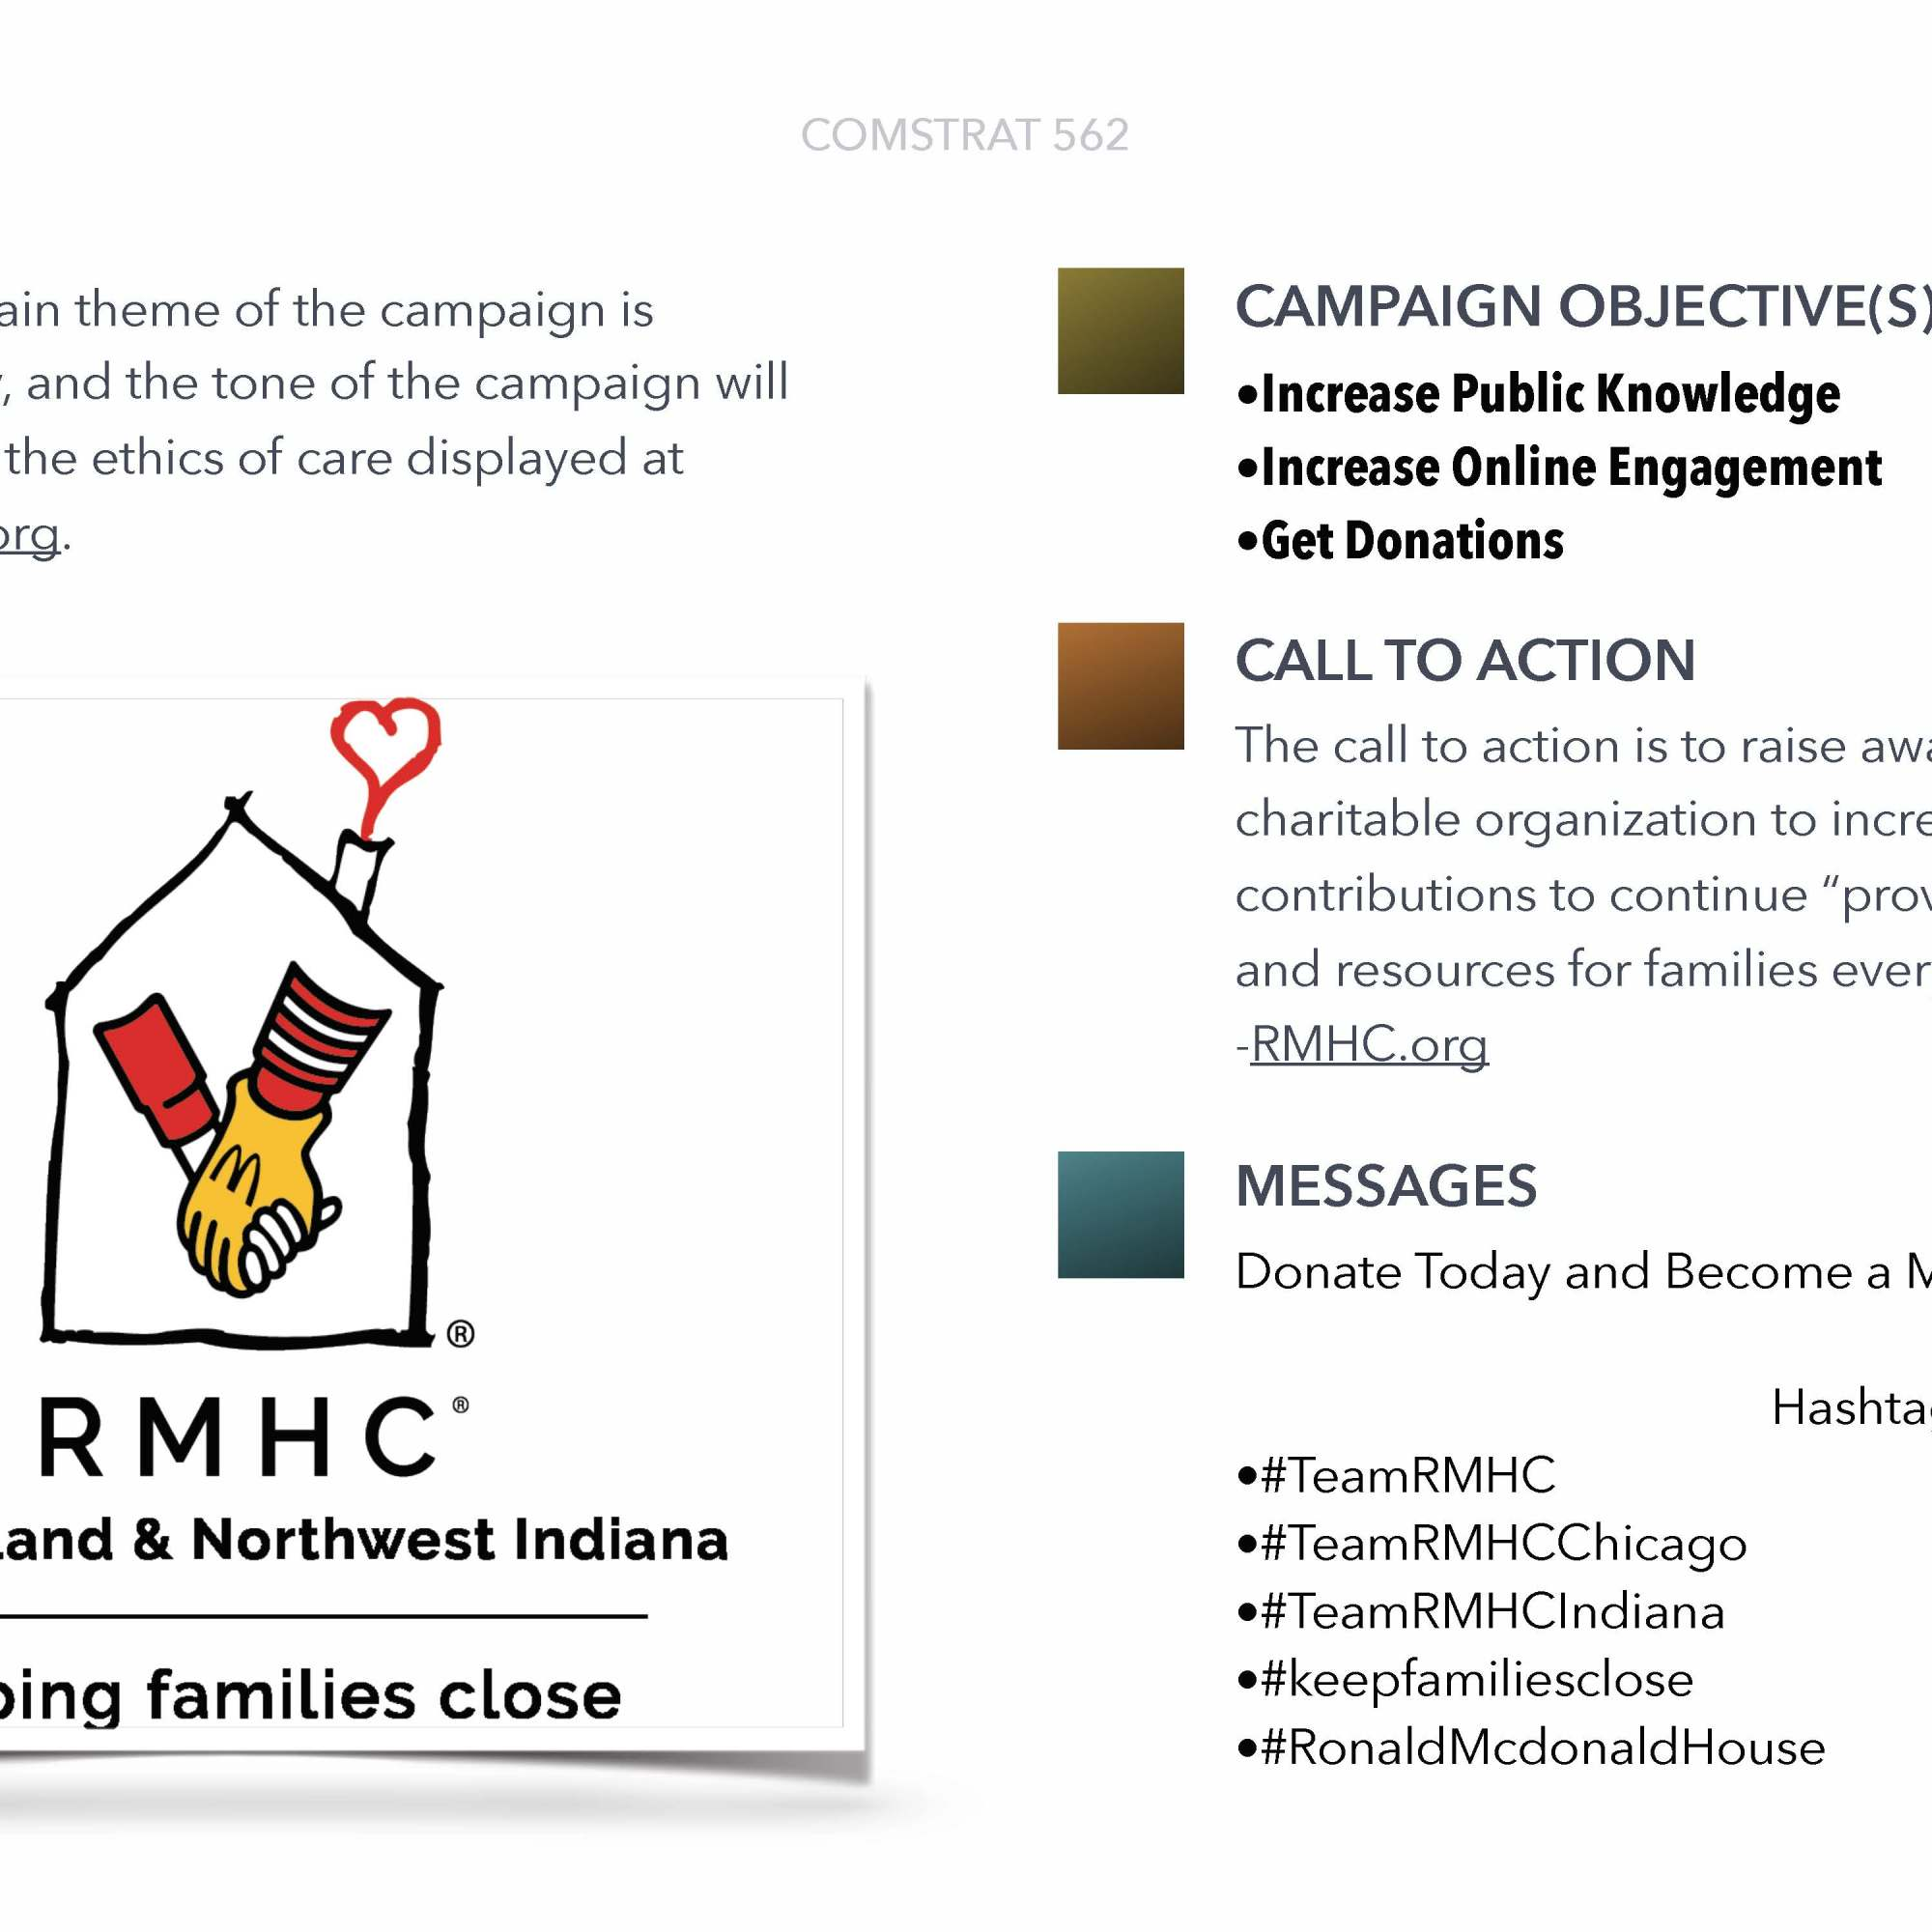 Ronald McDonald House Charities Inc. Theme